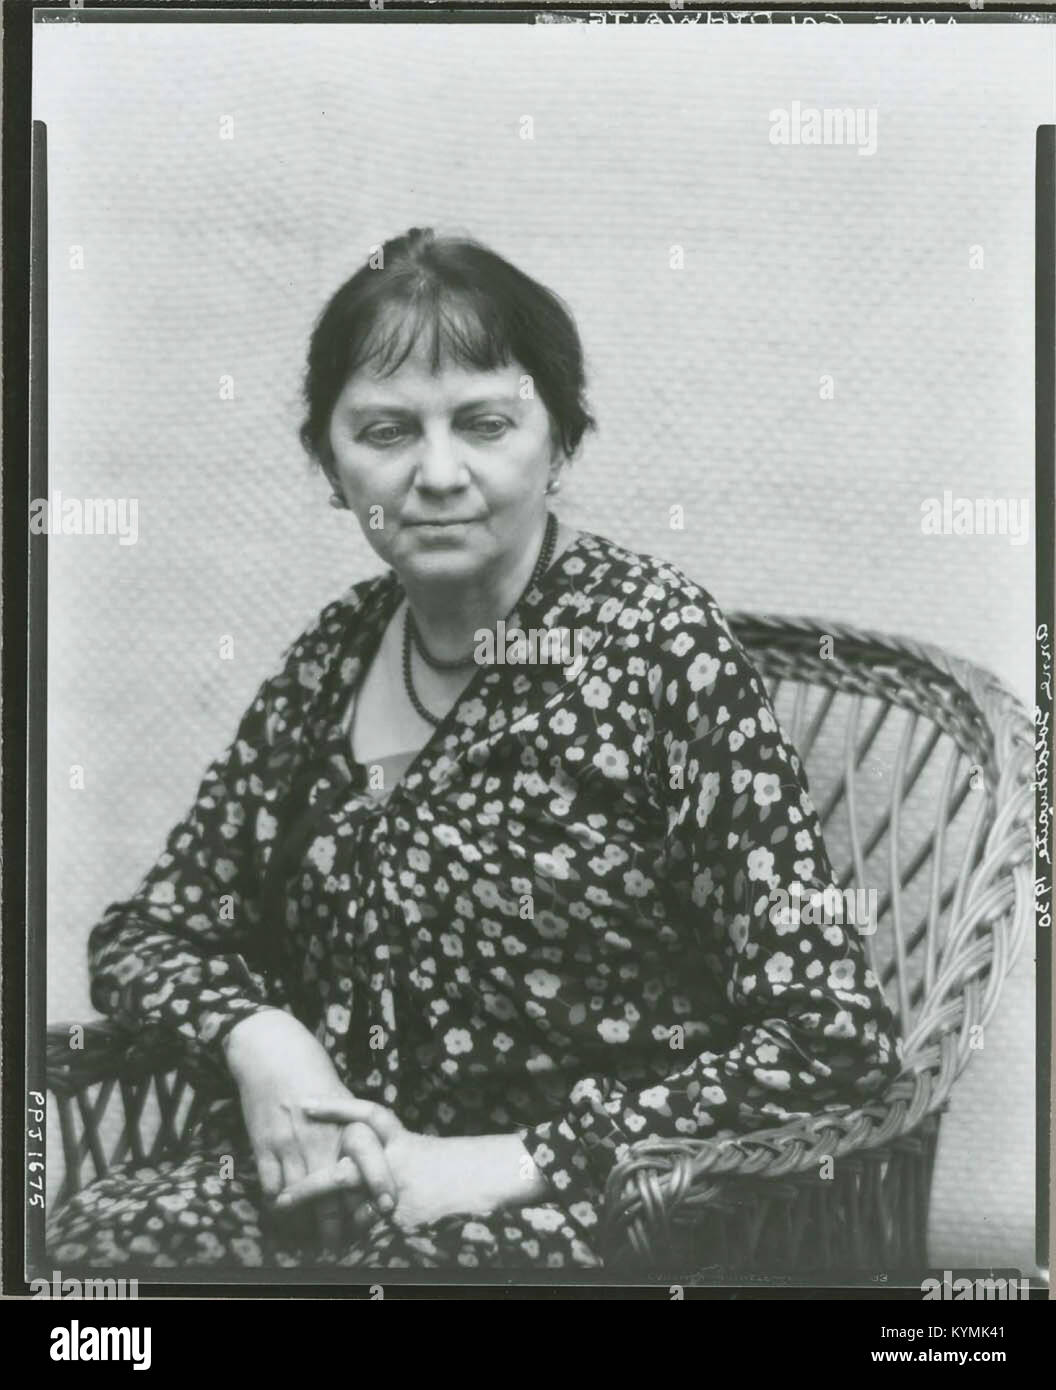 Anne Goldthwaite, American painter and printmaker, 1869-1944 3378173525 o - Stock Image